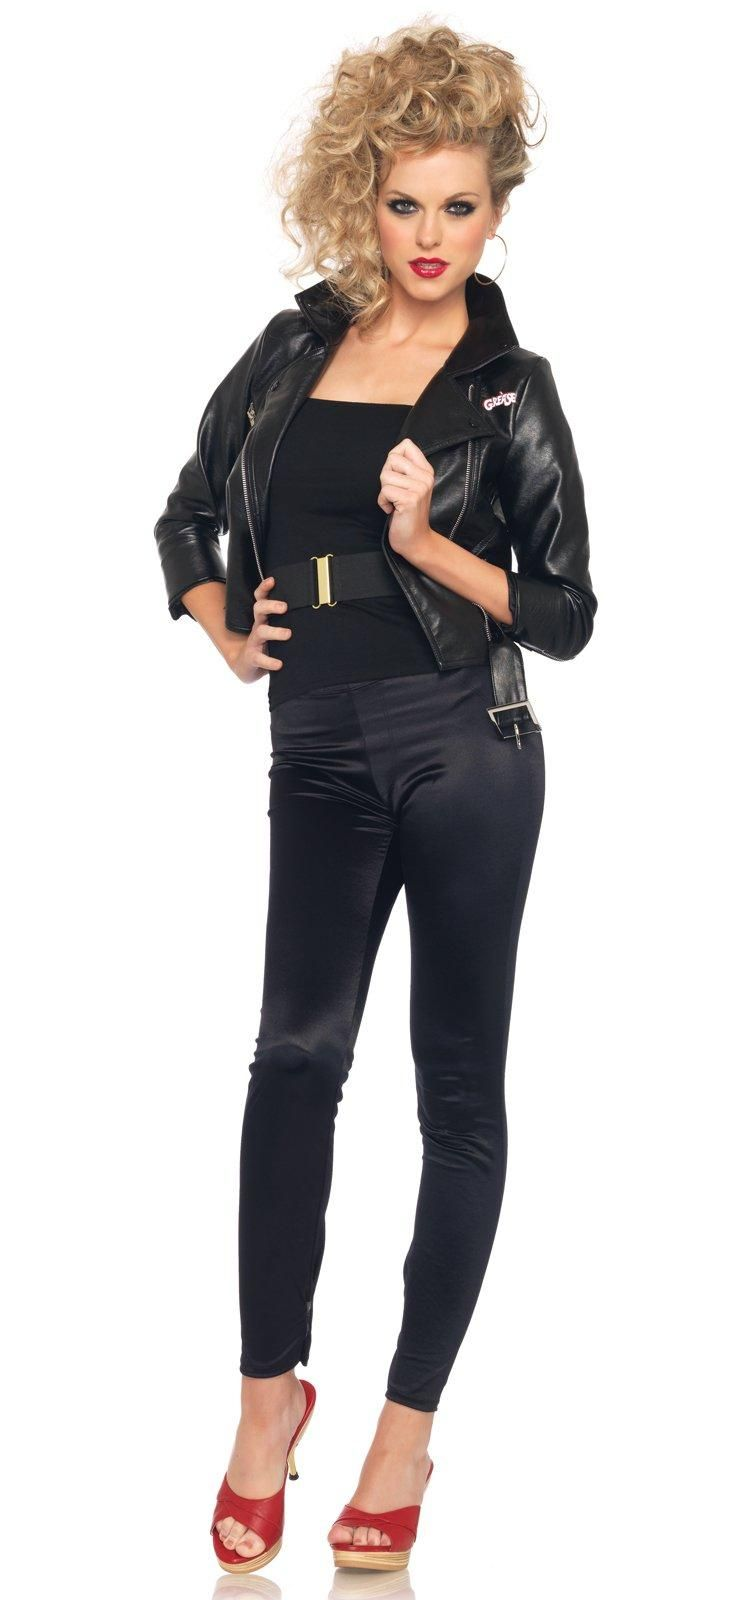 Halloween costumes with leather jackets